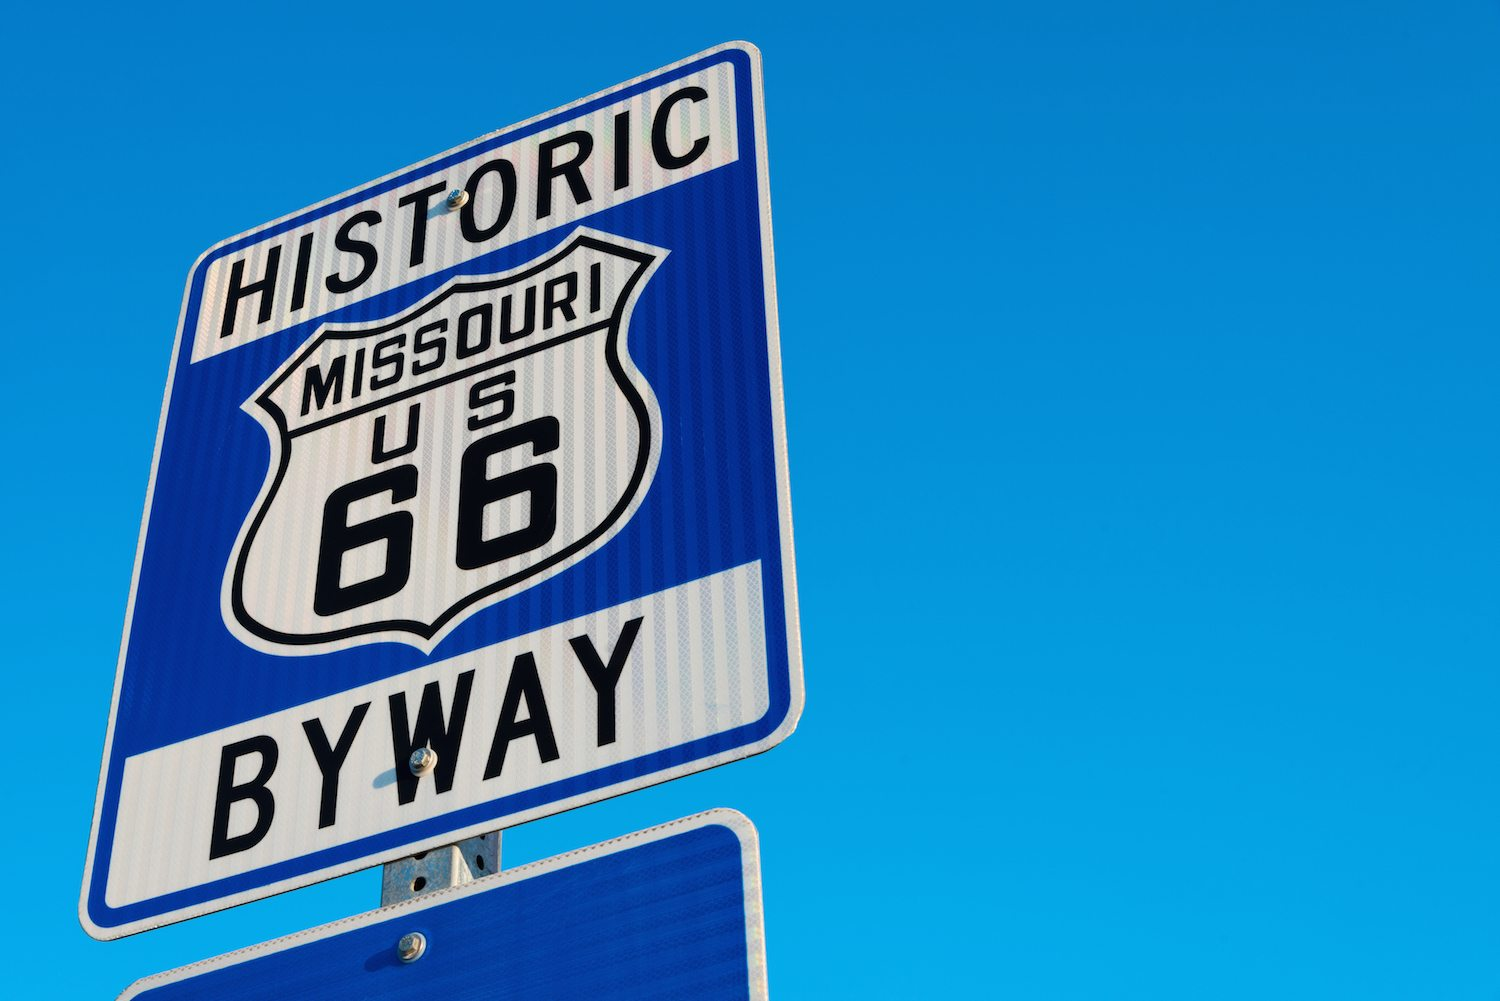 Top Attractions Along Historic Route 66 in Missouri